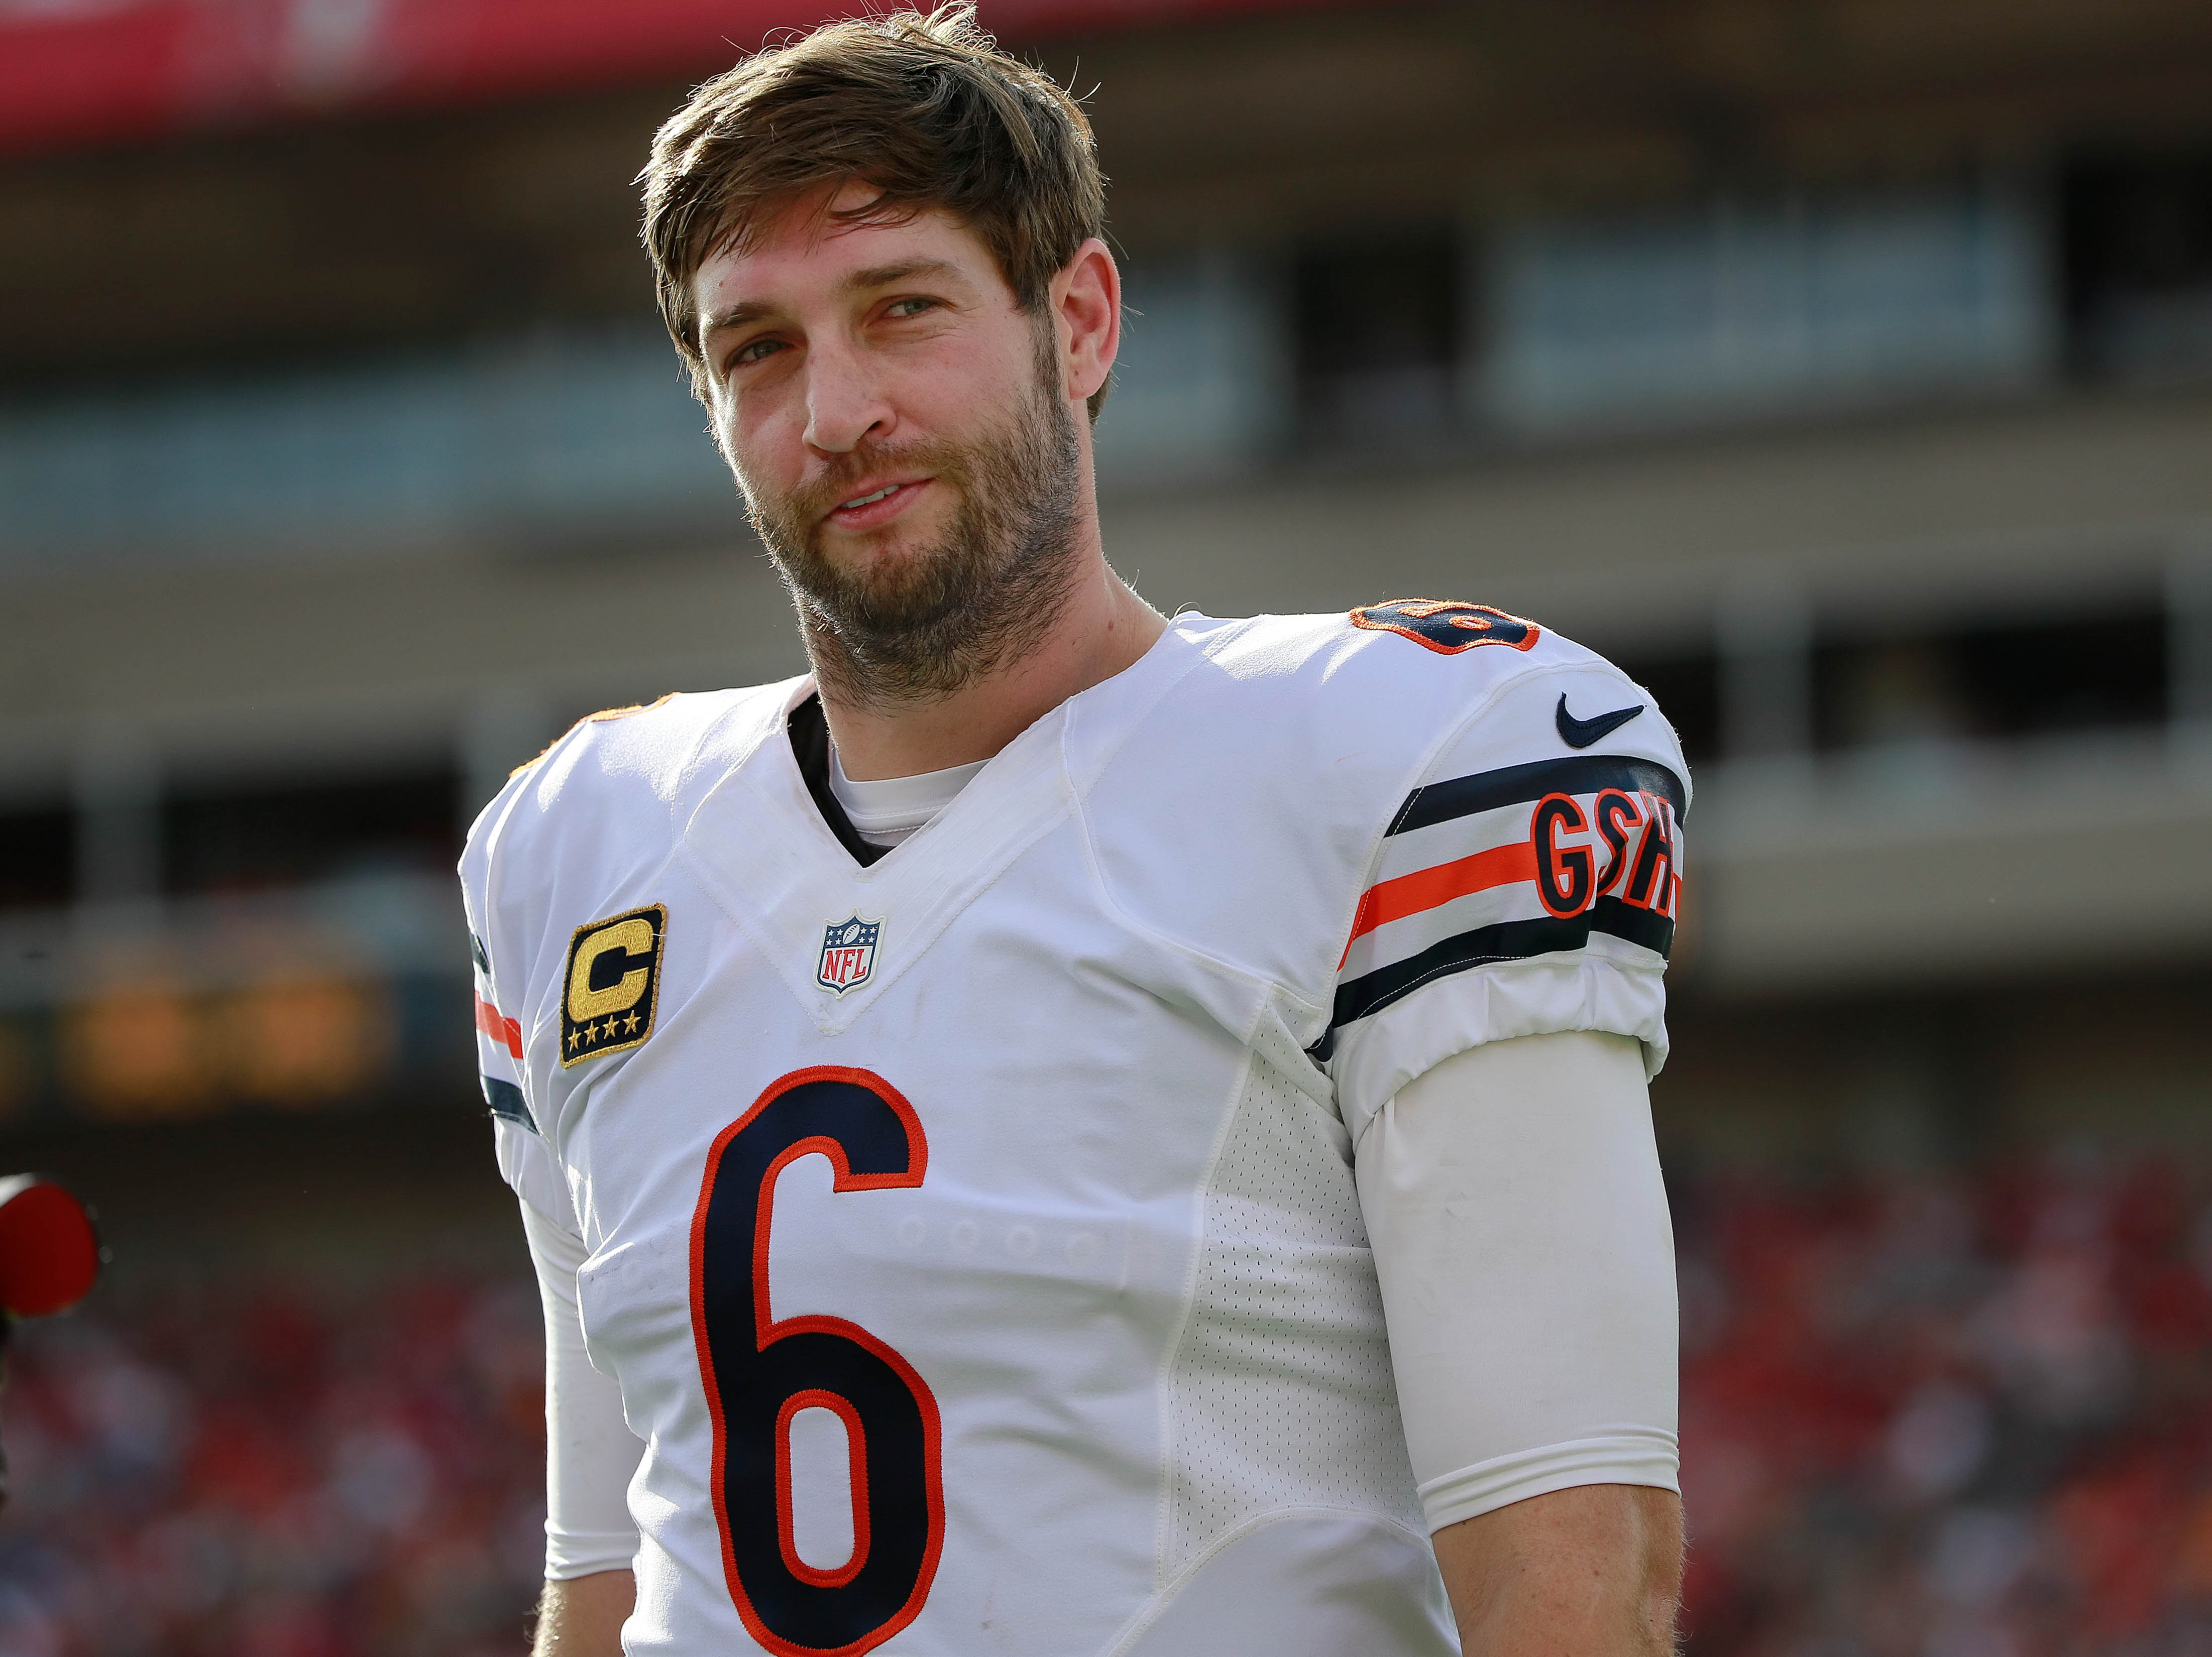 9049361-nfl-chicago-bears-at-tampa-bay-buccaneers